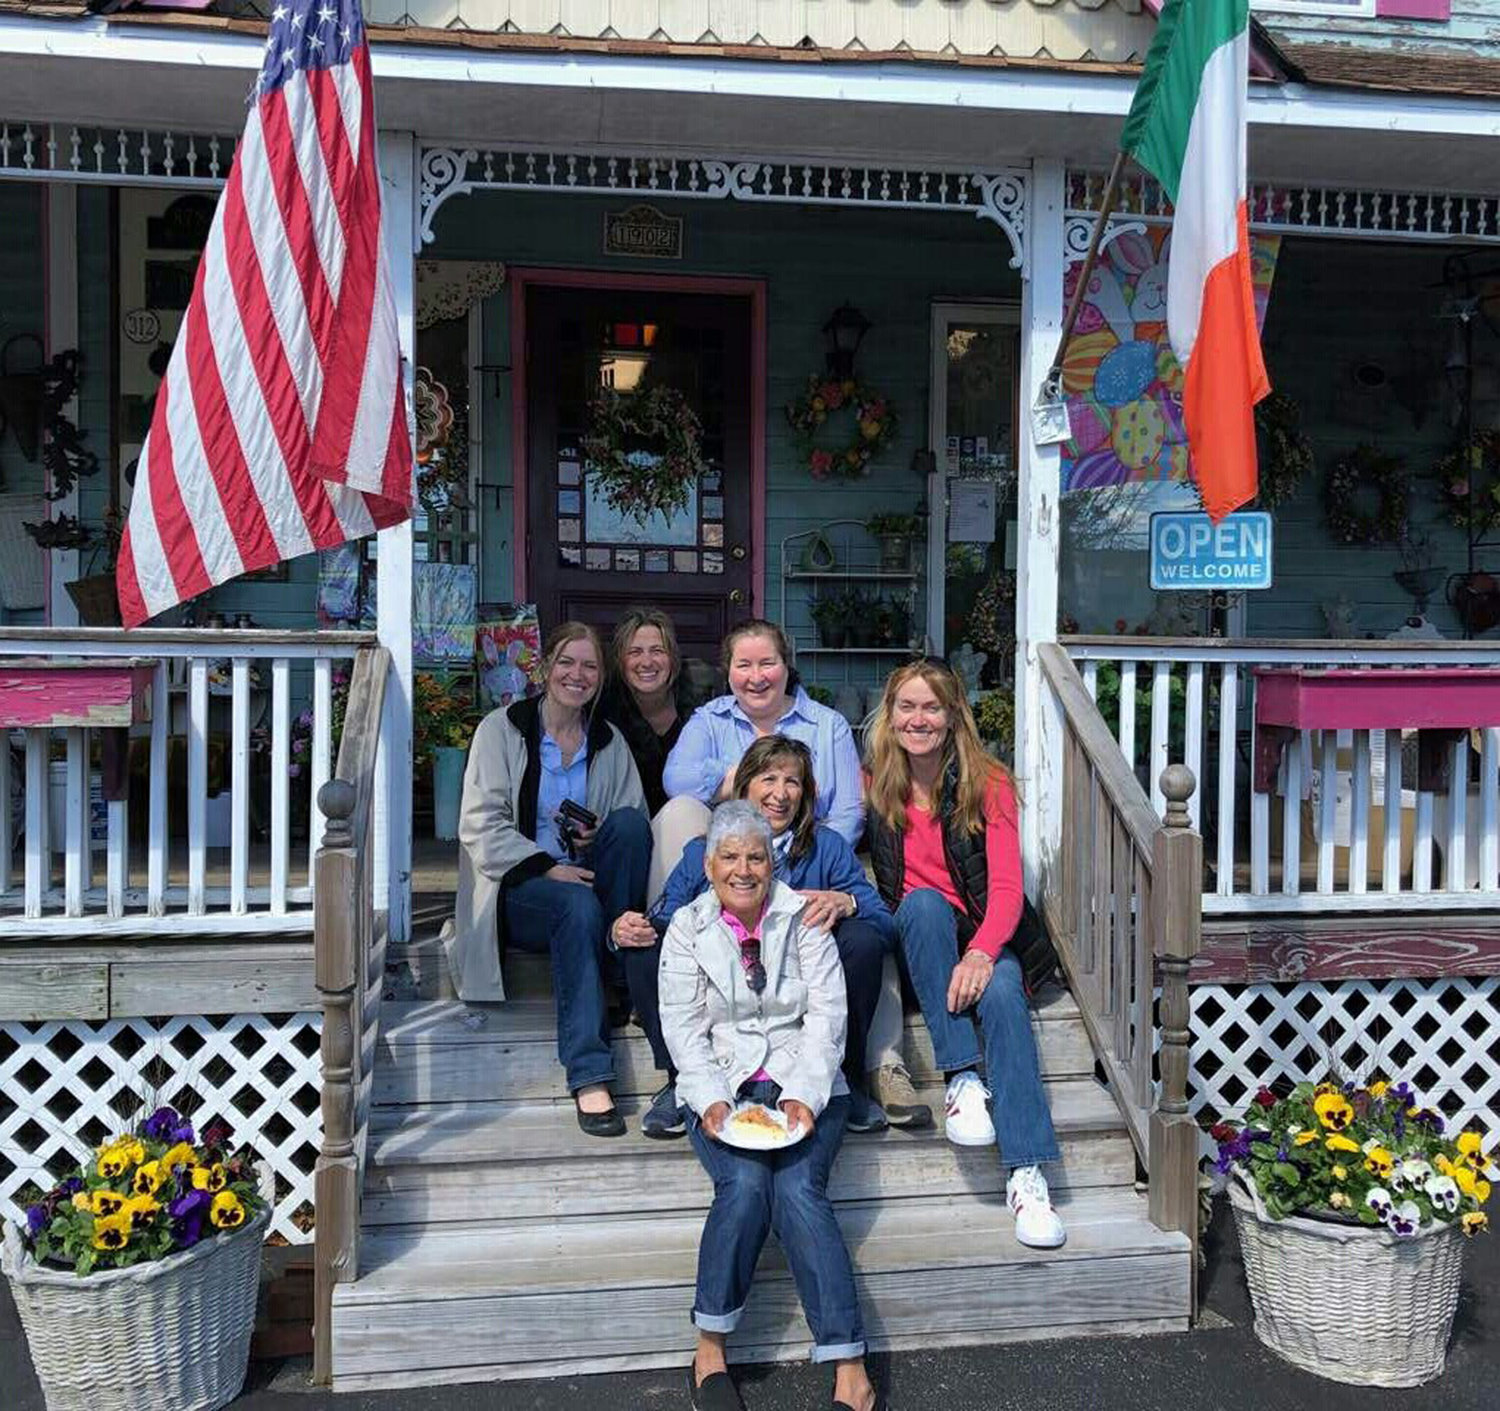 Owners Ann Durkin, far left, and Ellen Dolan, in pink, stock the shop with their favorite items from home.